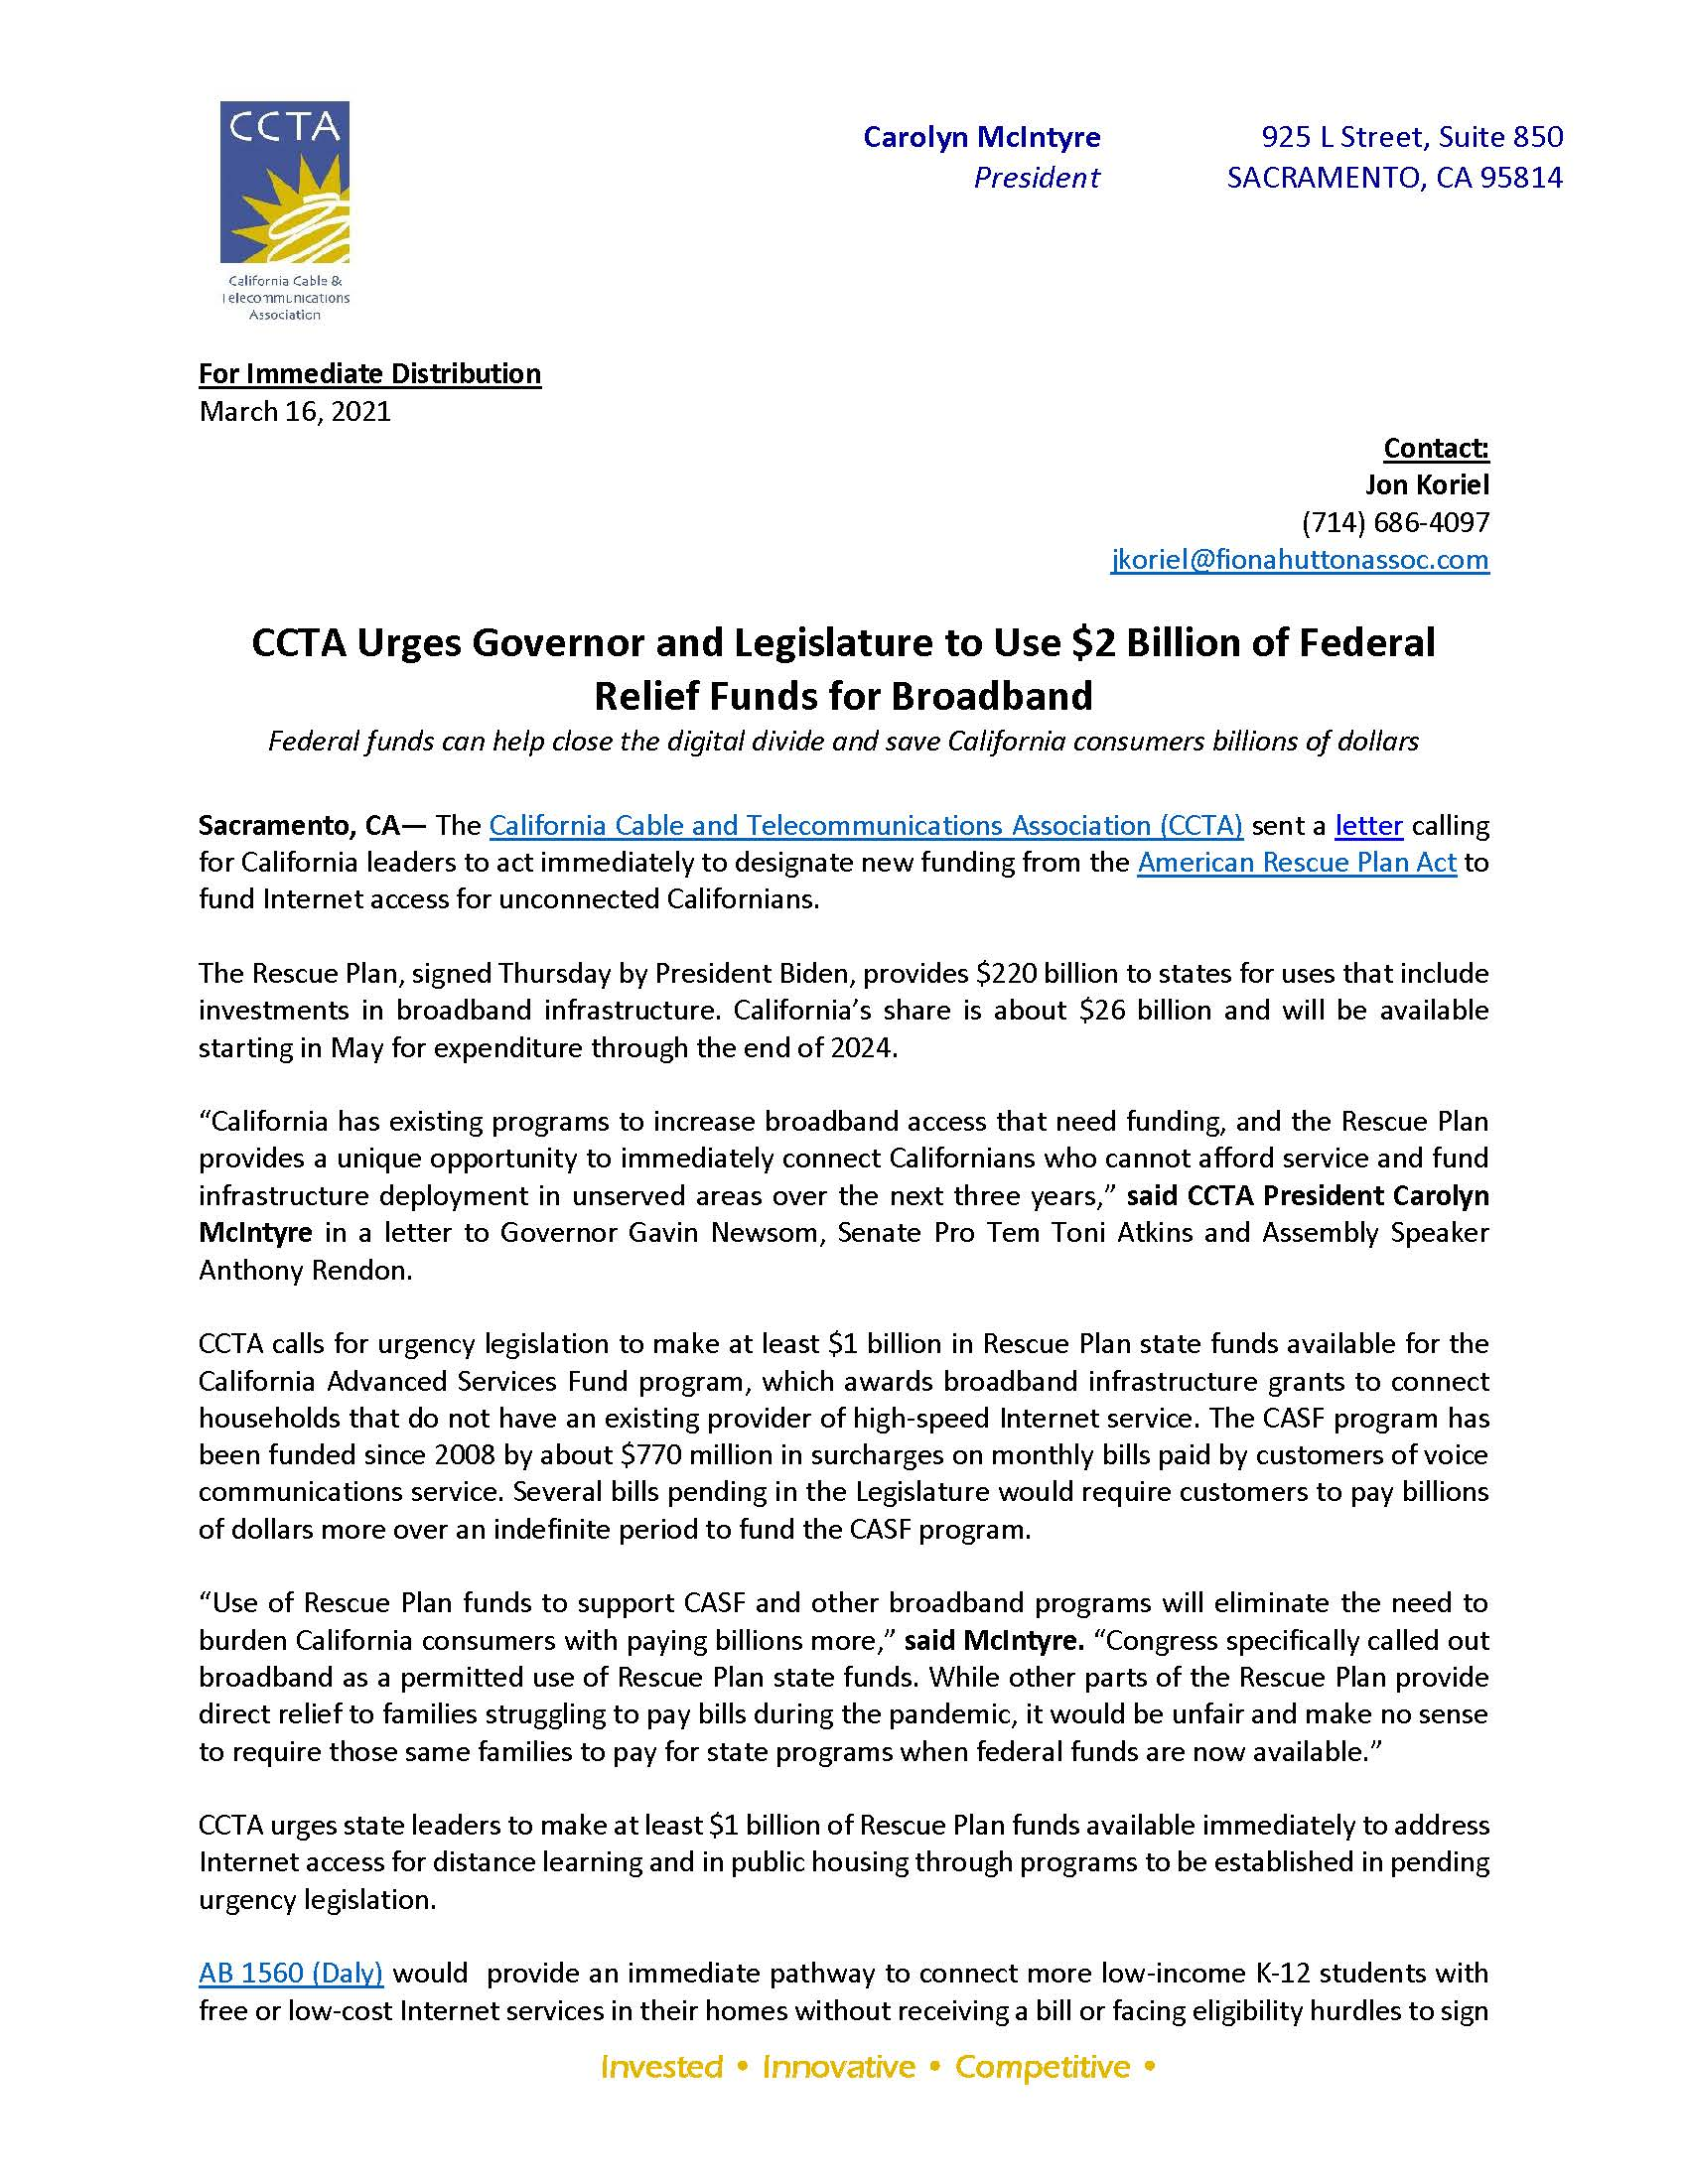 CCTA Letter to Governor and Legislative Leaders Urging Use of $2 Billion Relief Funds for Broadband